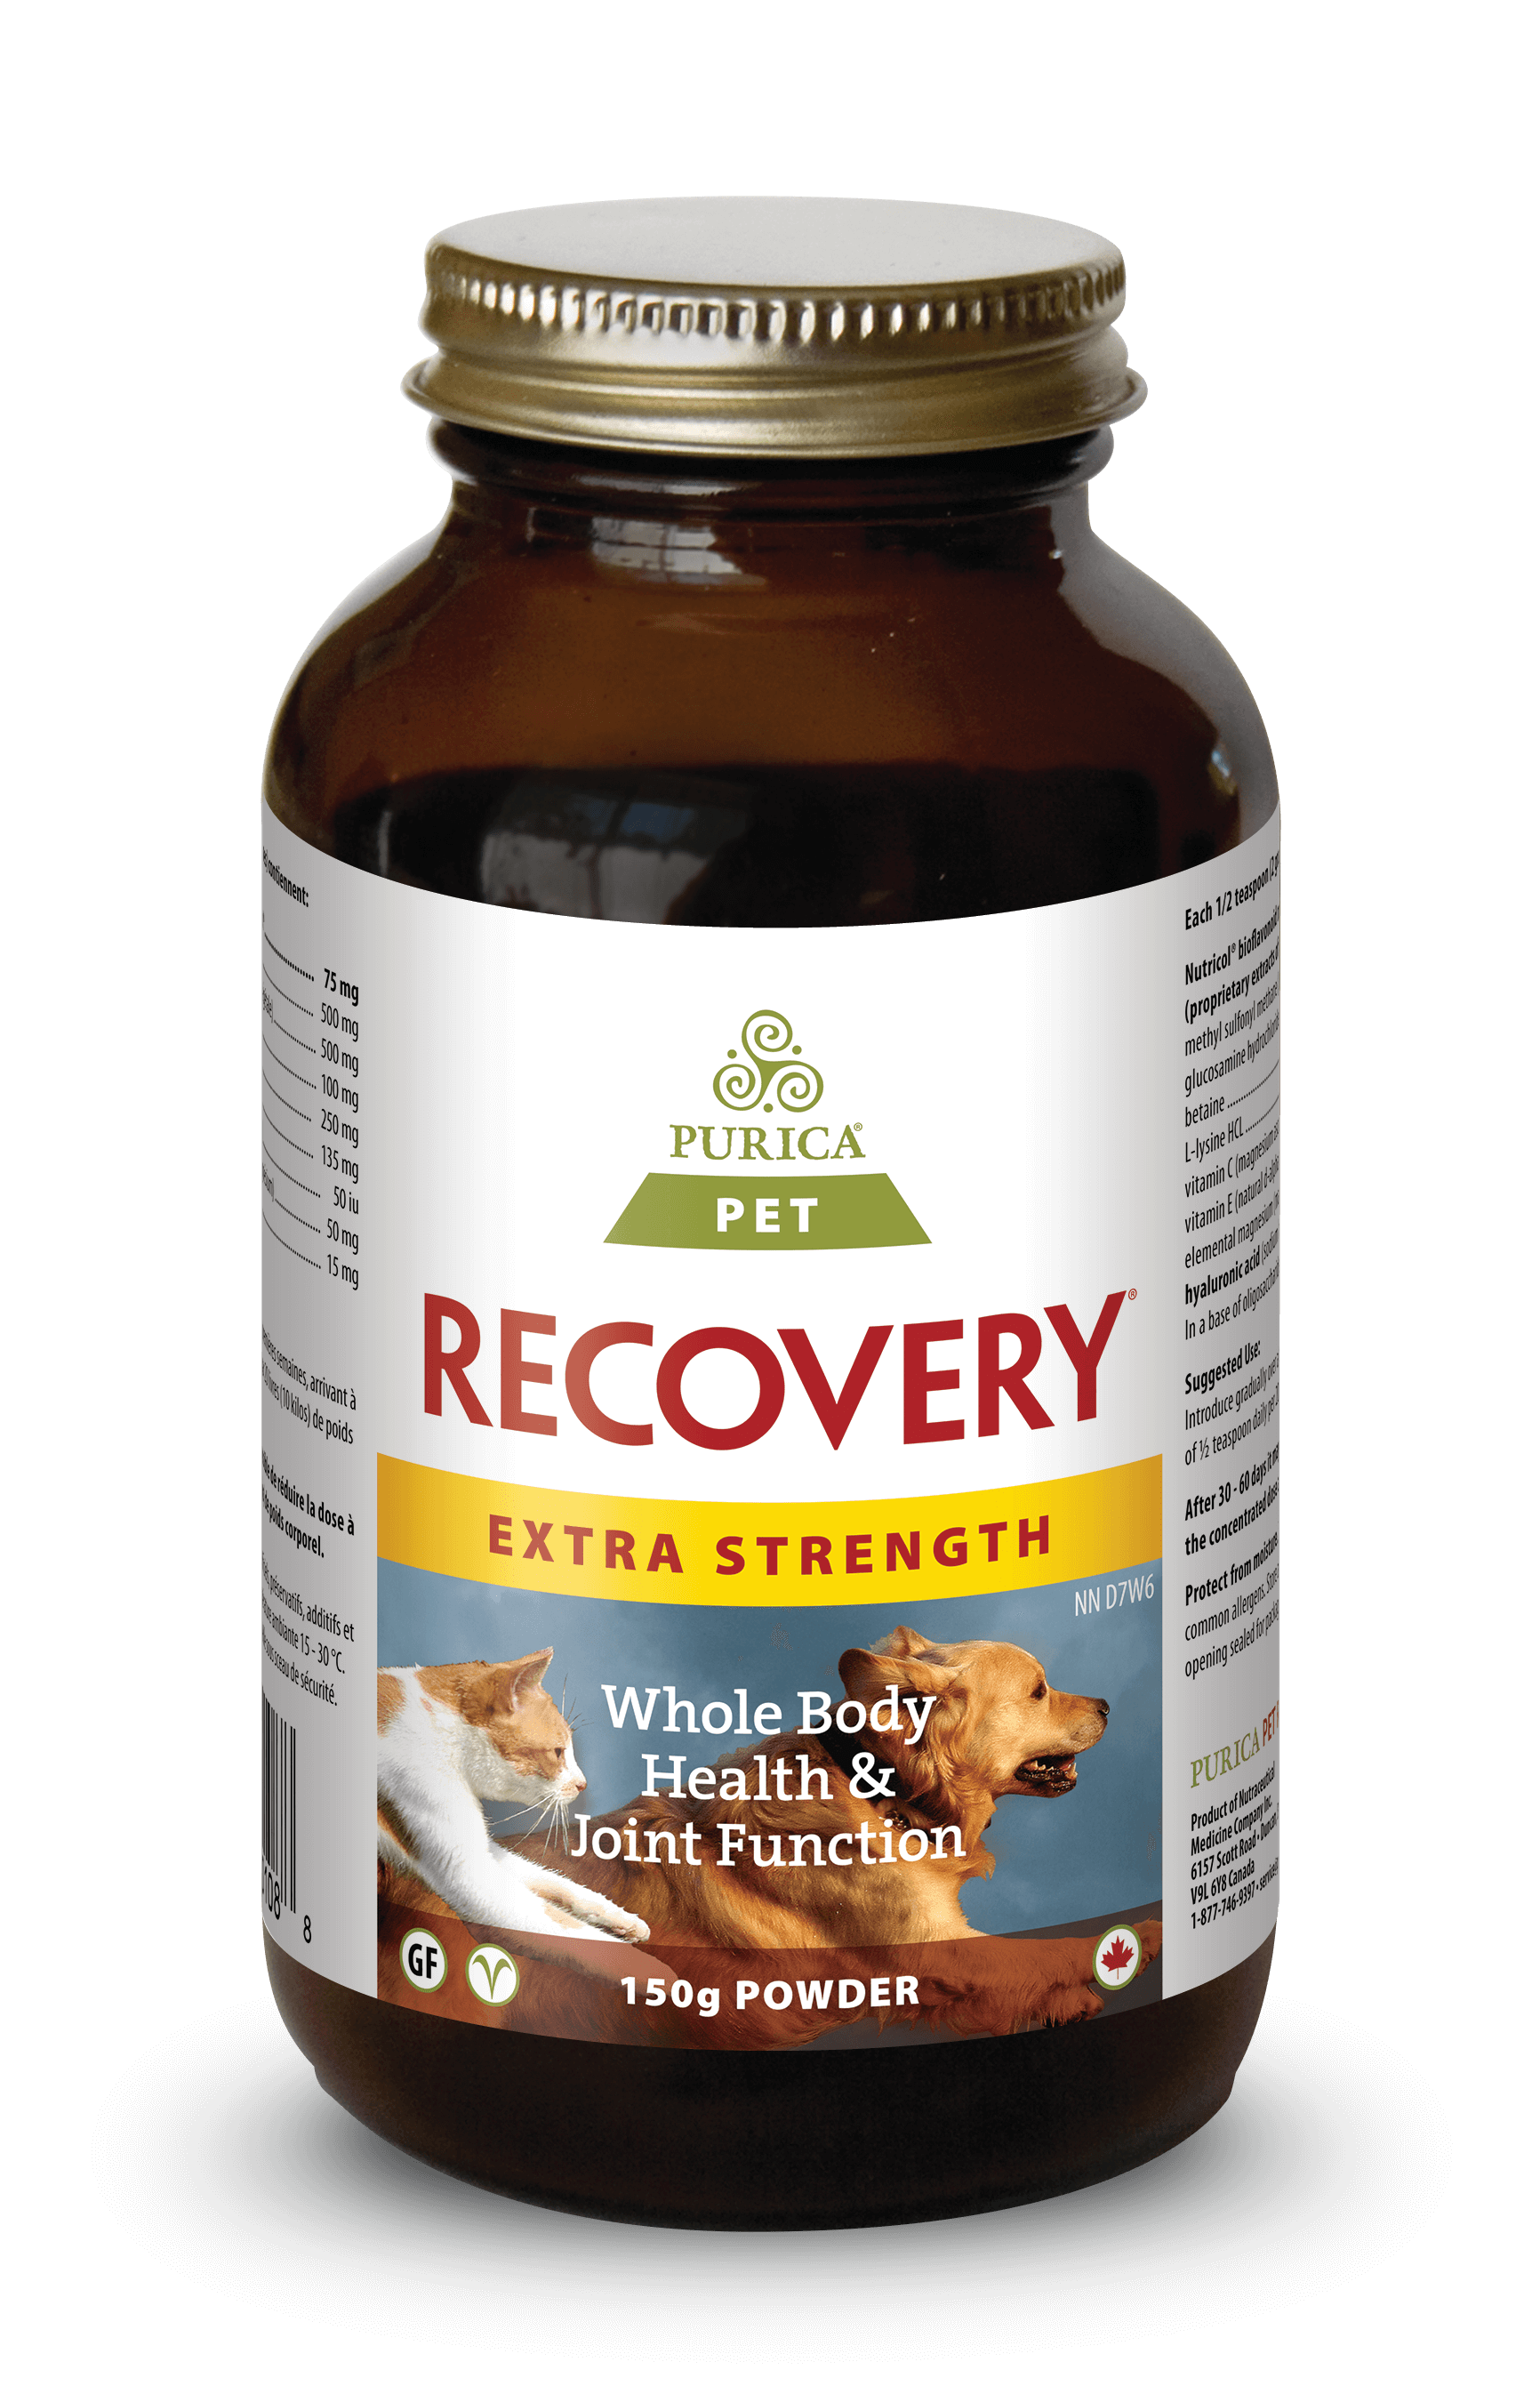 Purica Recovery Extra Strength Powder Dog & Cat Suppliment Image